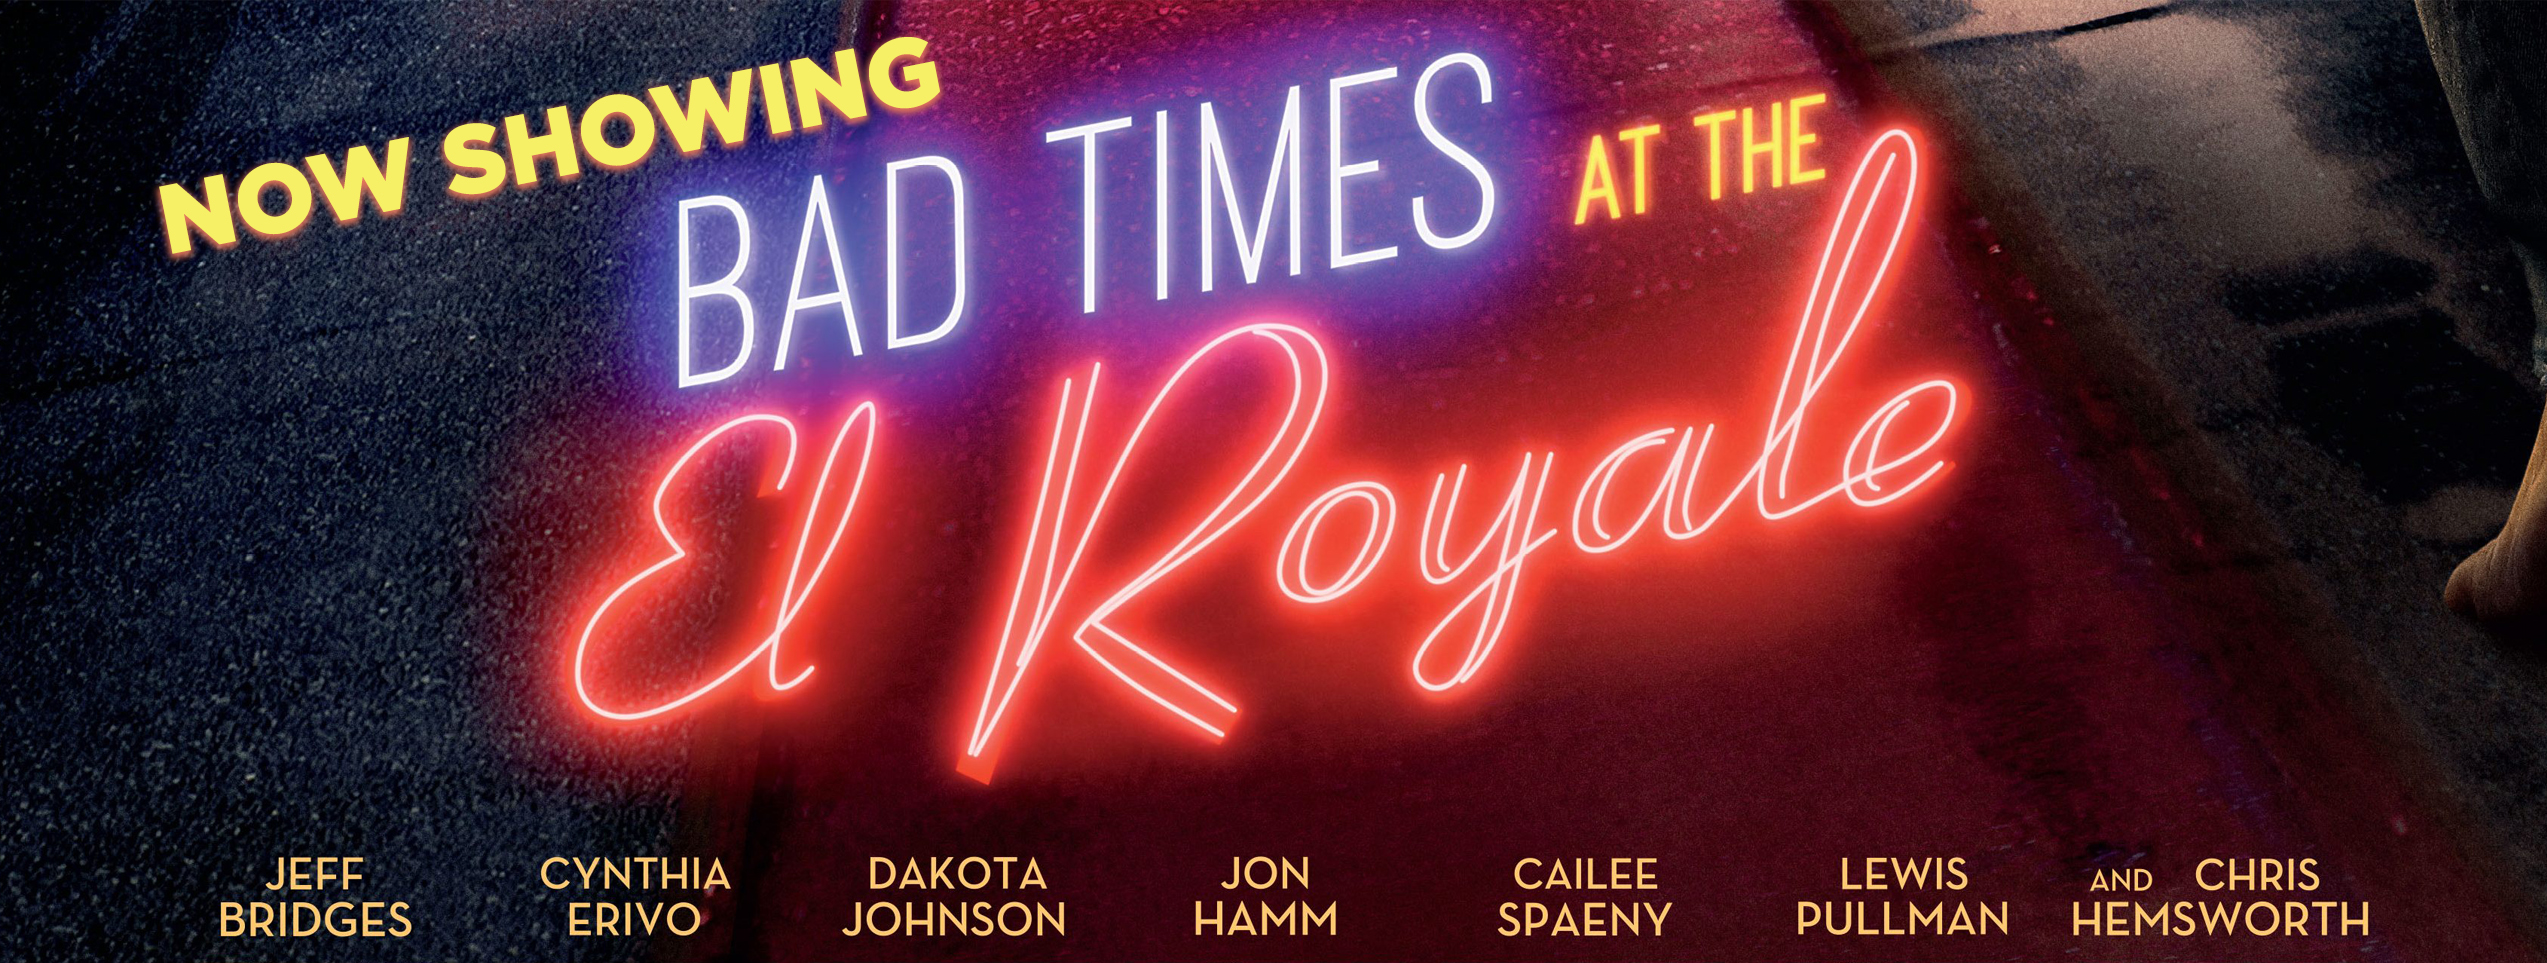 Bad Times at the El Royale (2D) (15+) (Eng)